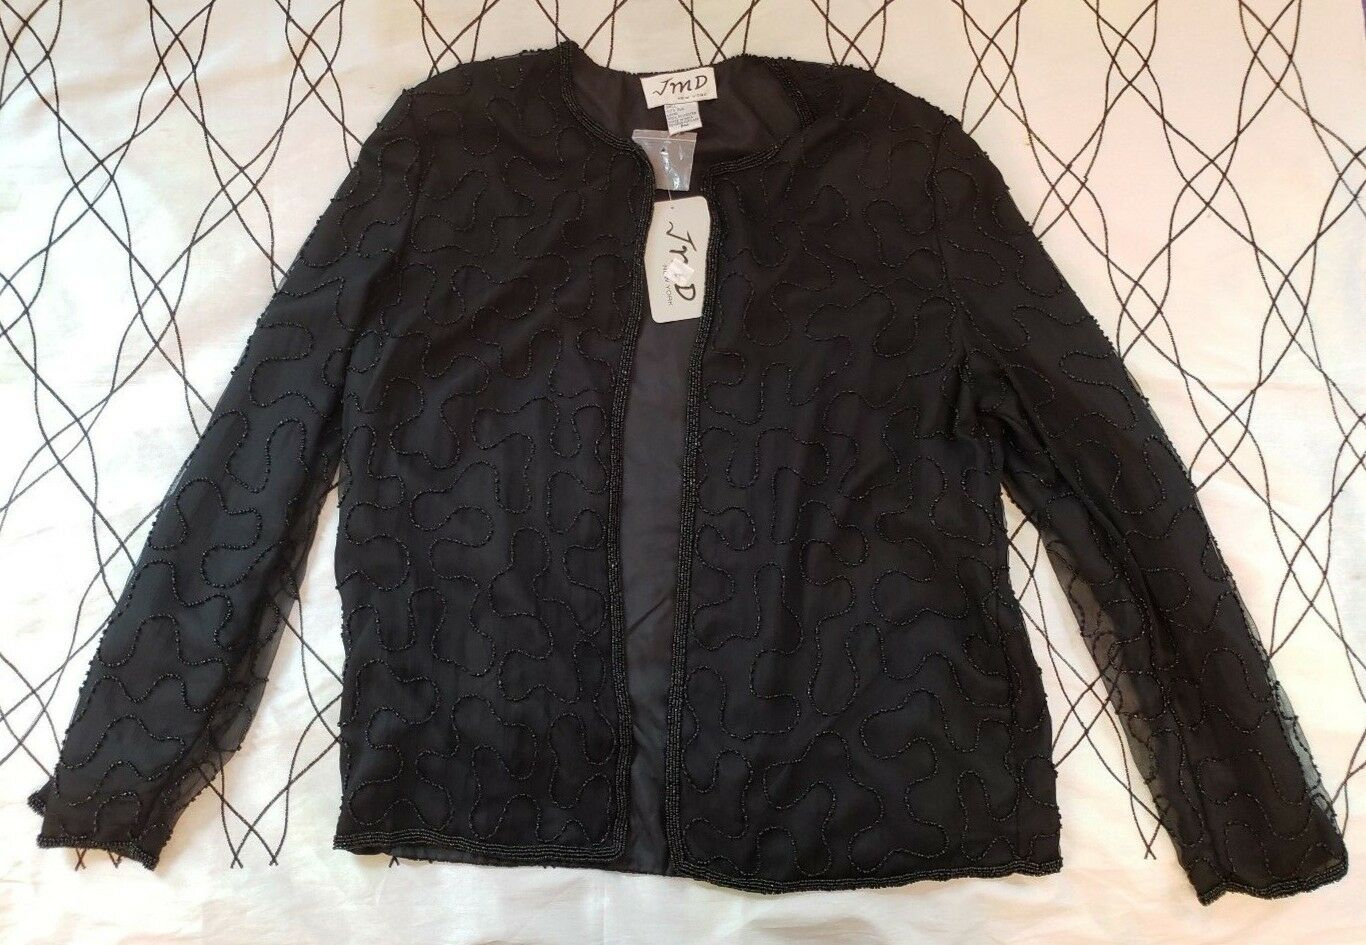 JMD New York Black Beaded Silk Evening Jacket Women's Size PM Vintage WITH TAGS